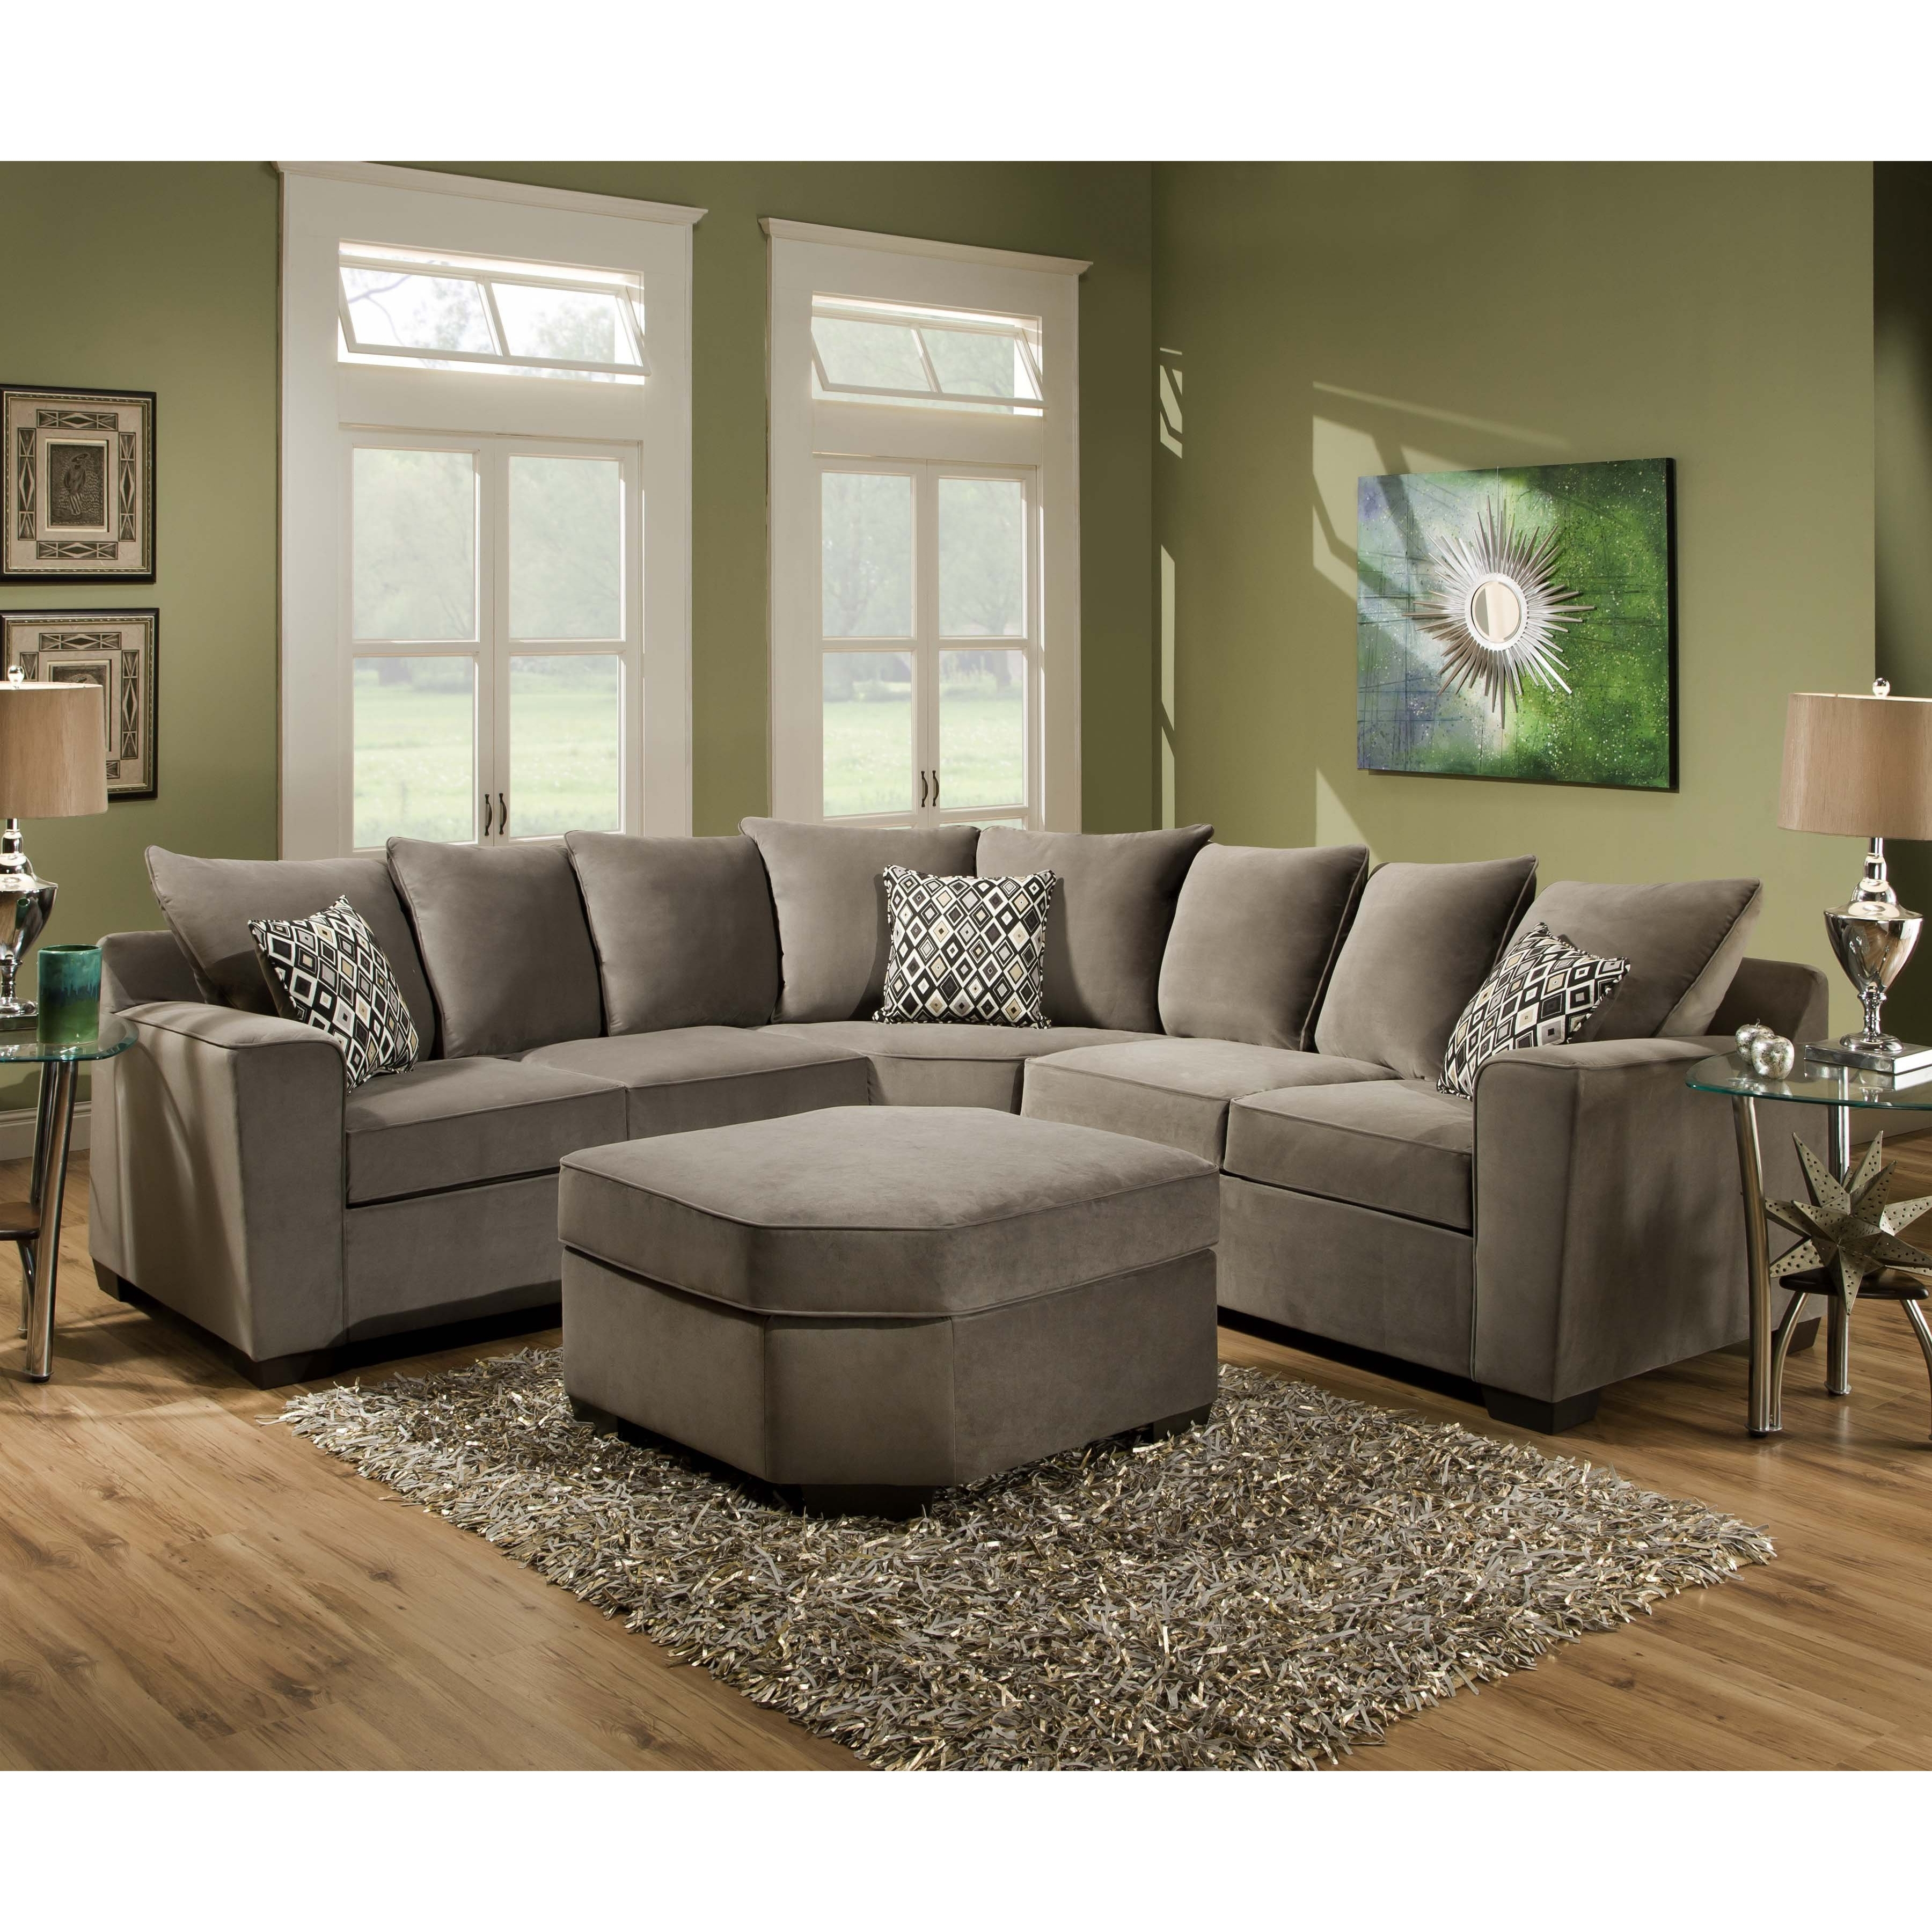 Reclining Sectional Sofas (View 6 of 15)